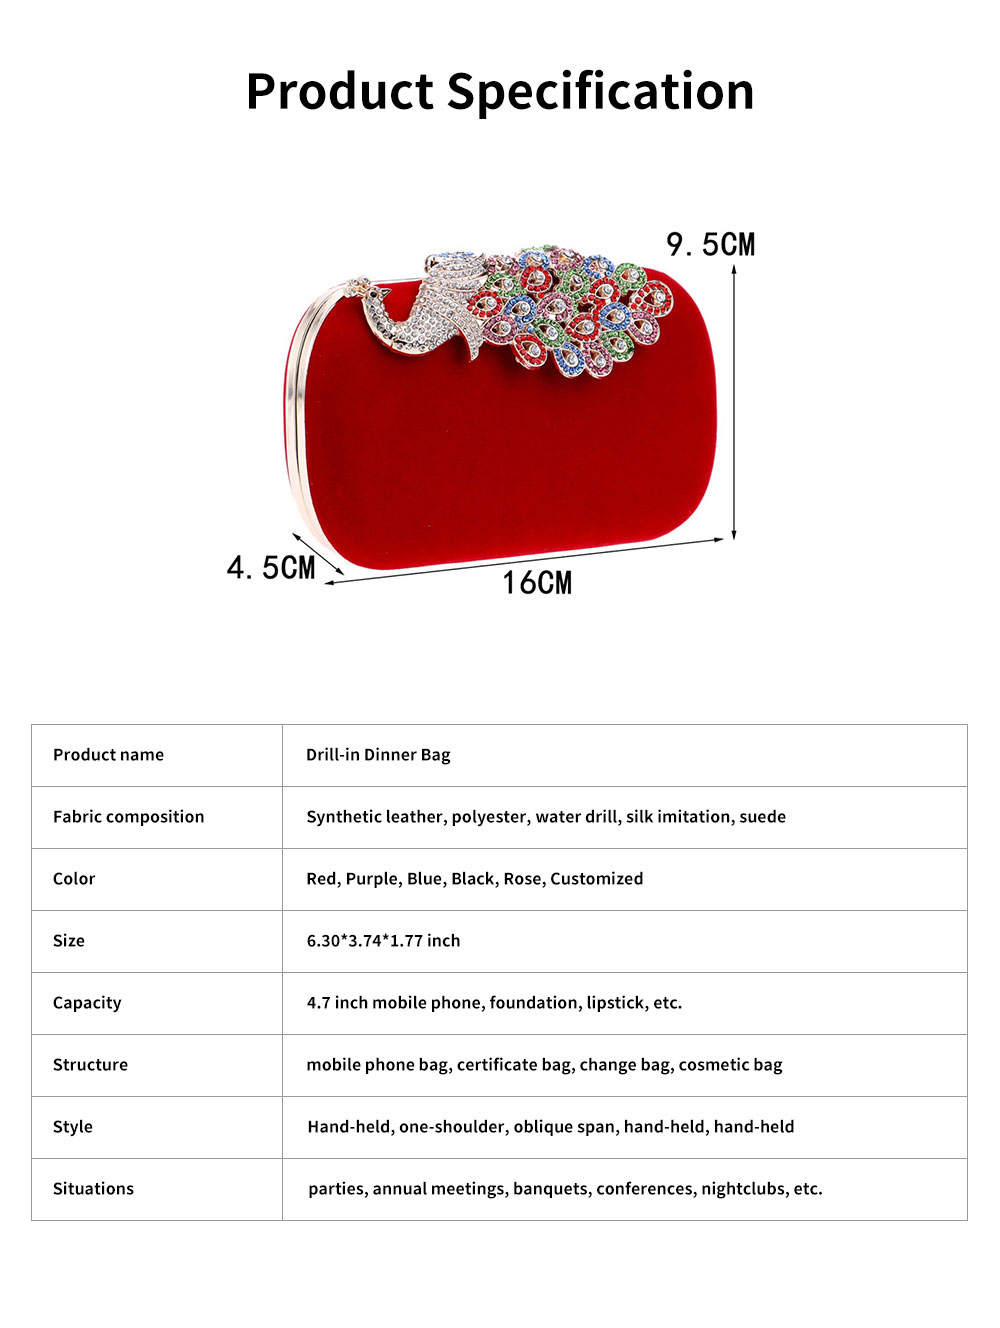 Drill-in Dinner Bag European and American Fashion Ladies' Banquet Bag Peacock Bag for Evening Dress 6